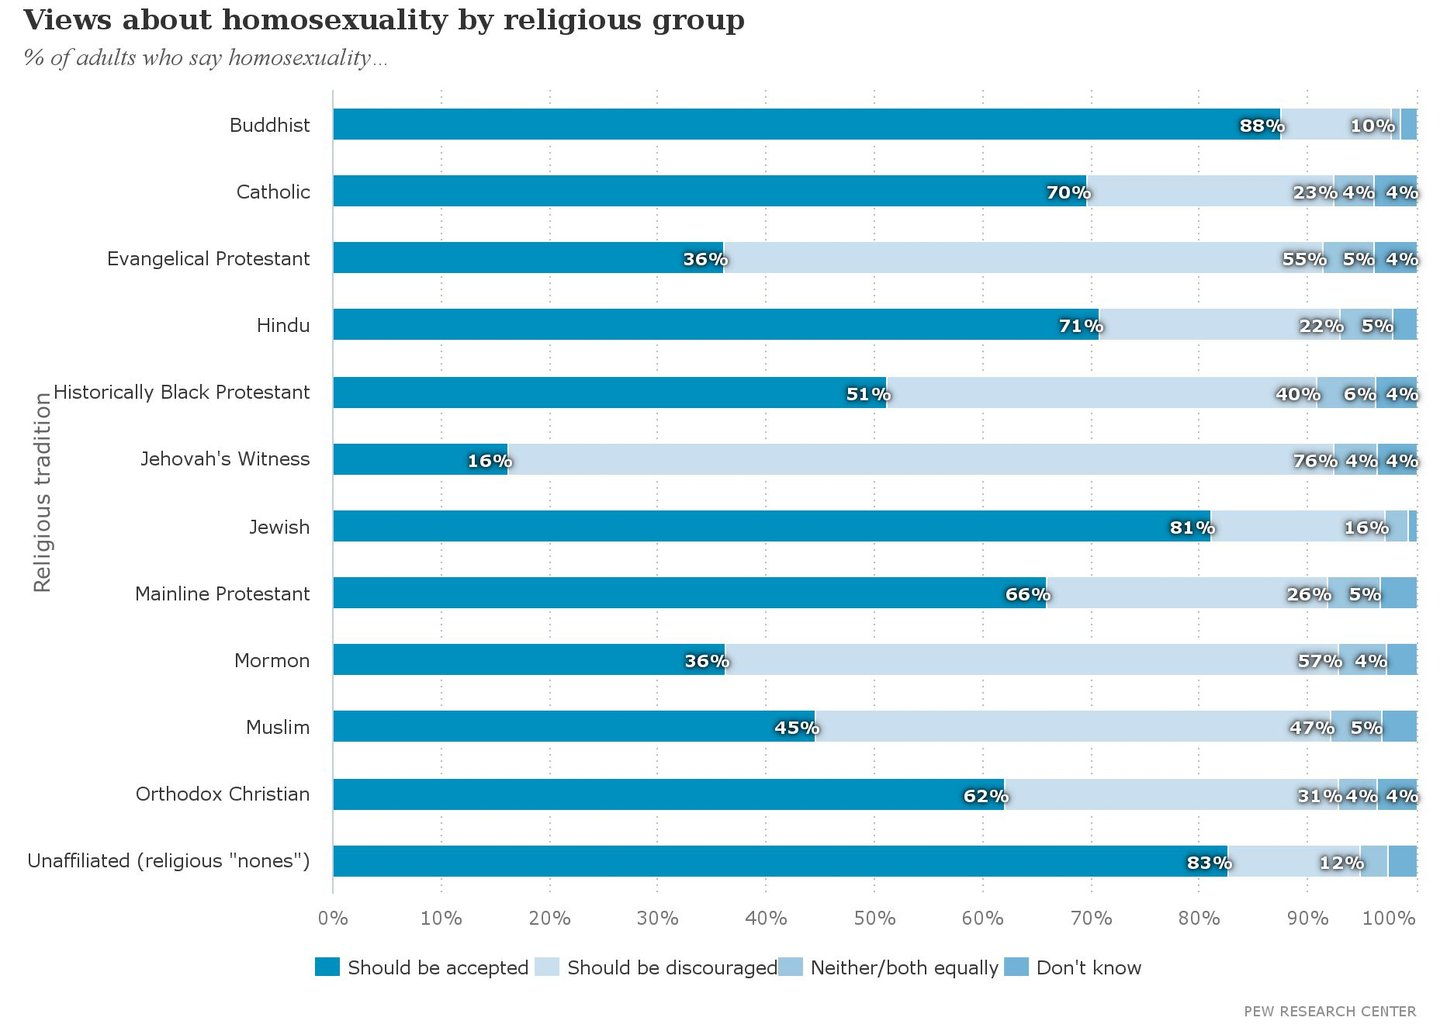 Views_about_homosexuality_by_religious_group